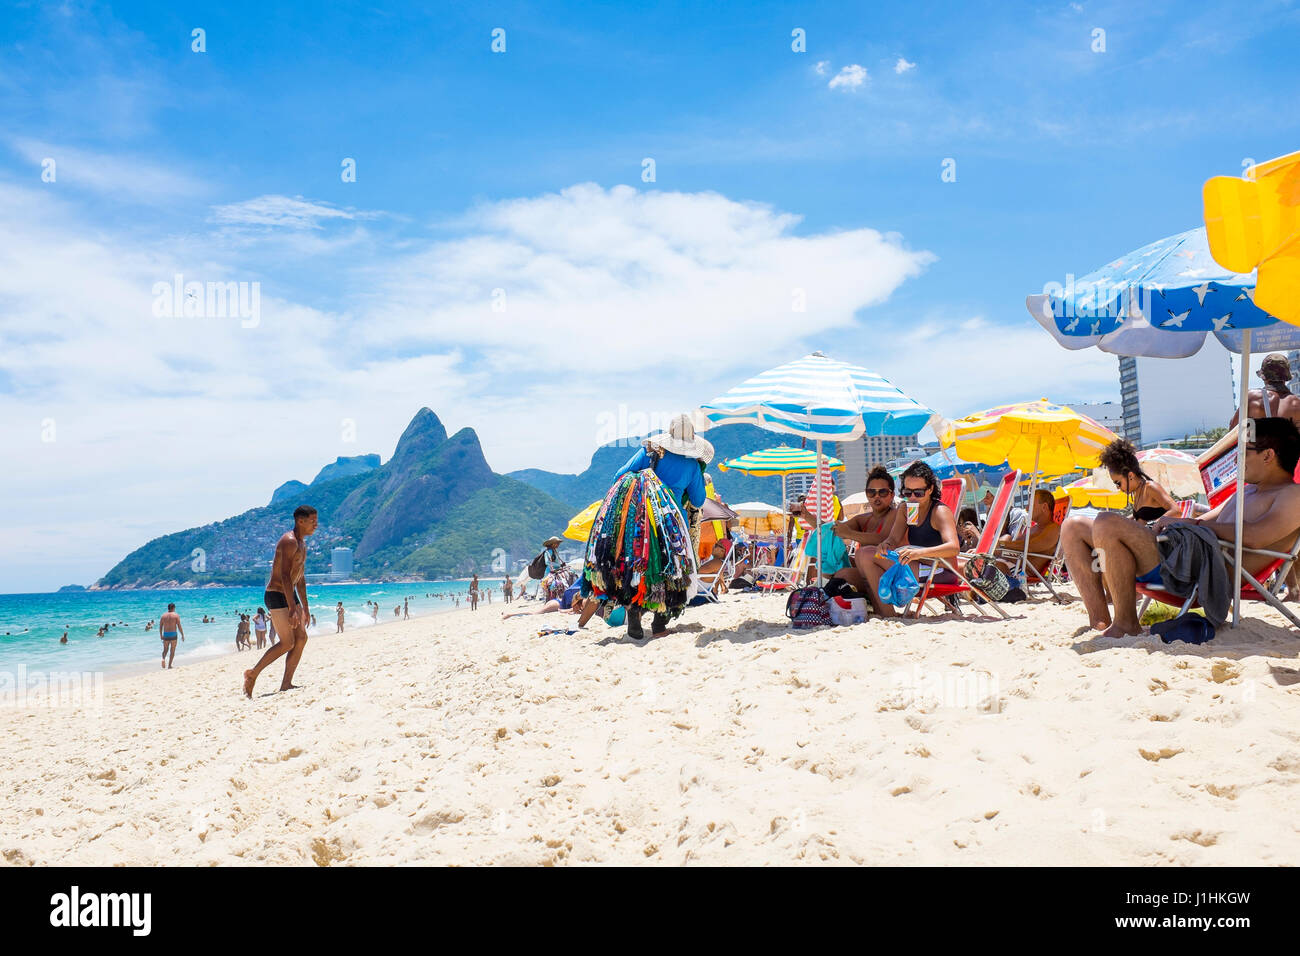 RIO DE JANEIRO - JANUARY 18, 2017: Beach vendors pass beachgoers relaxing in the shade of umbrellas on a hot summer - Stock Image